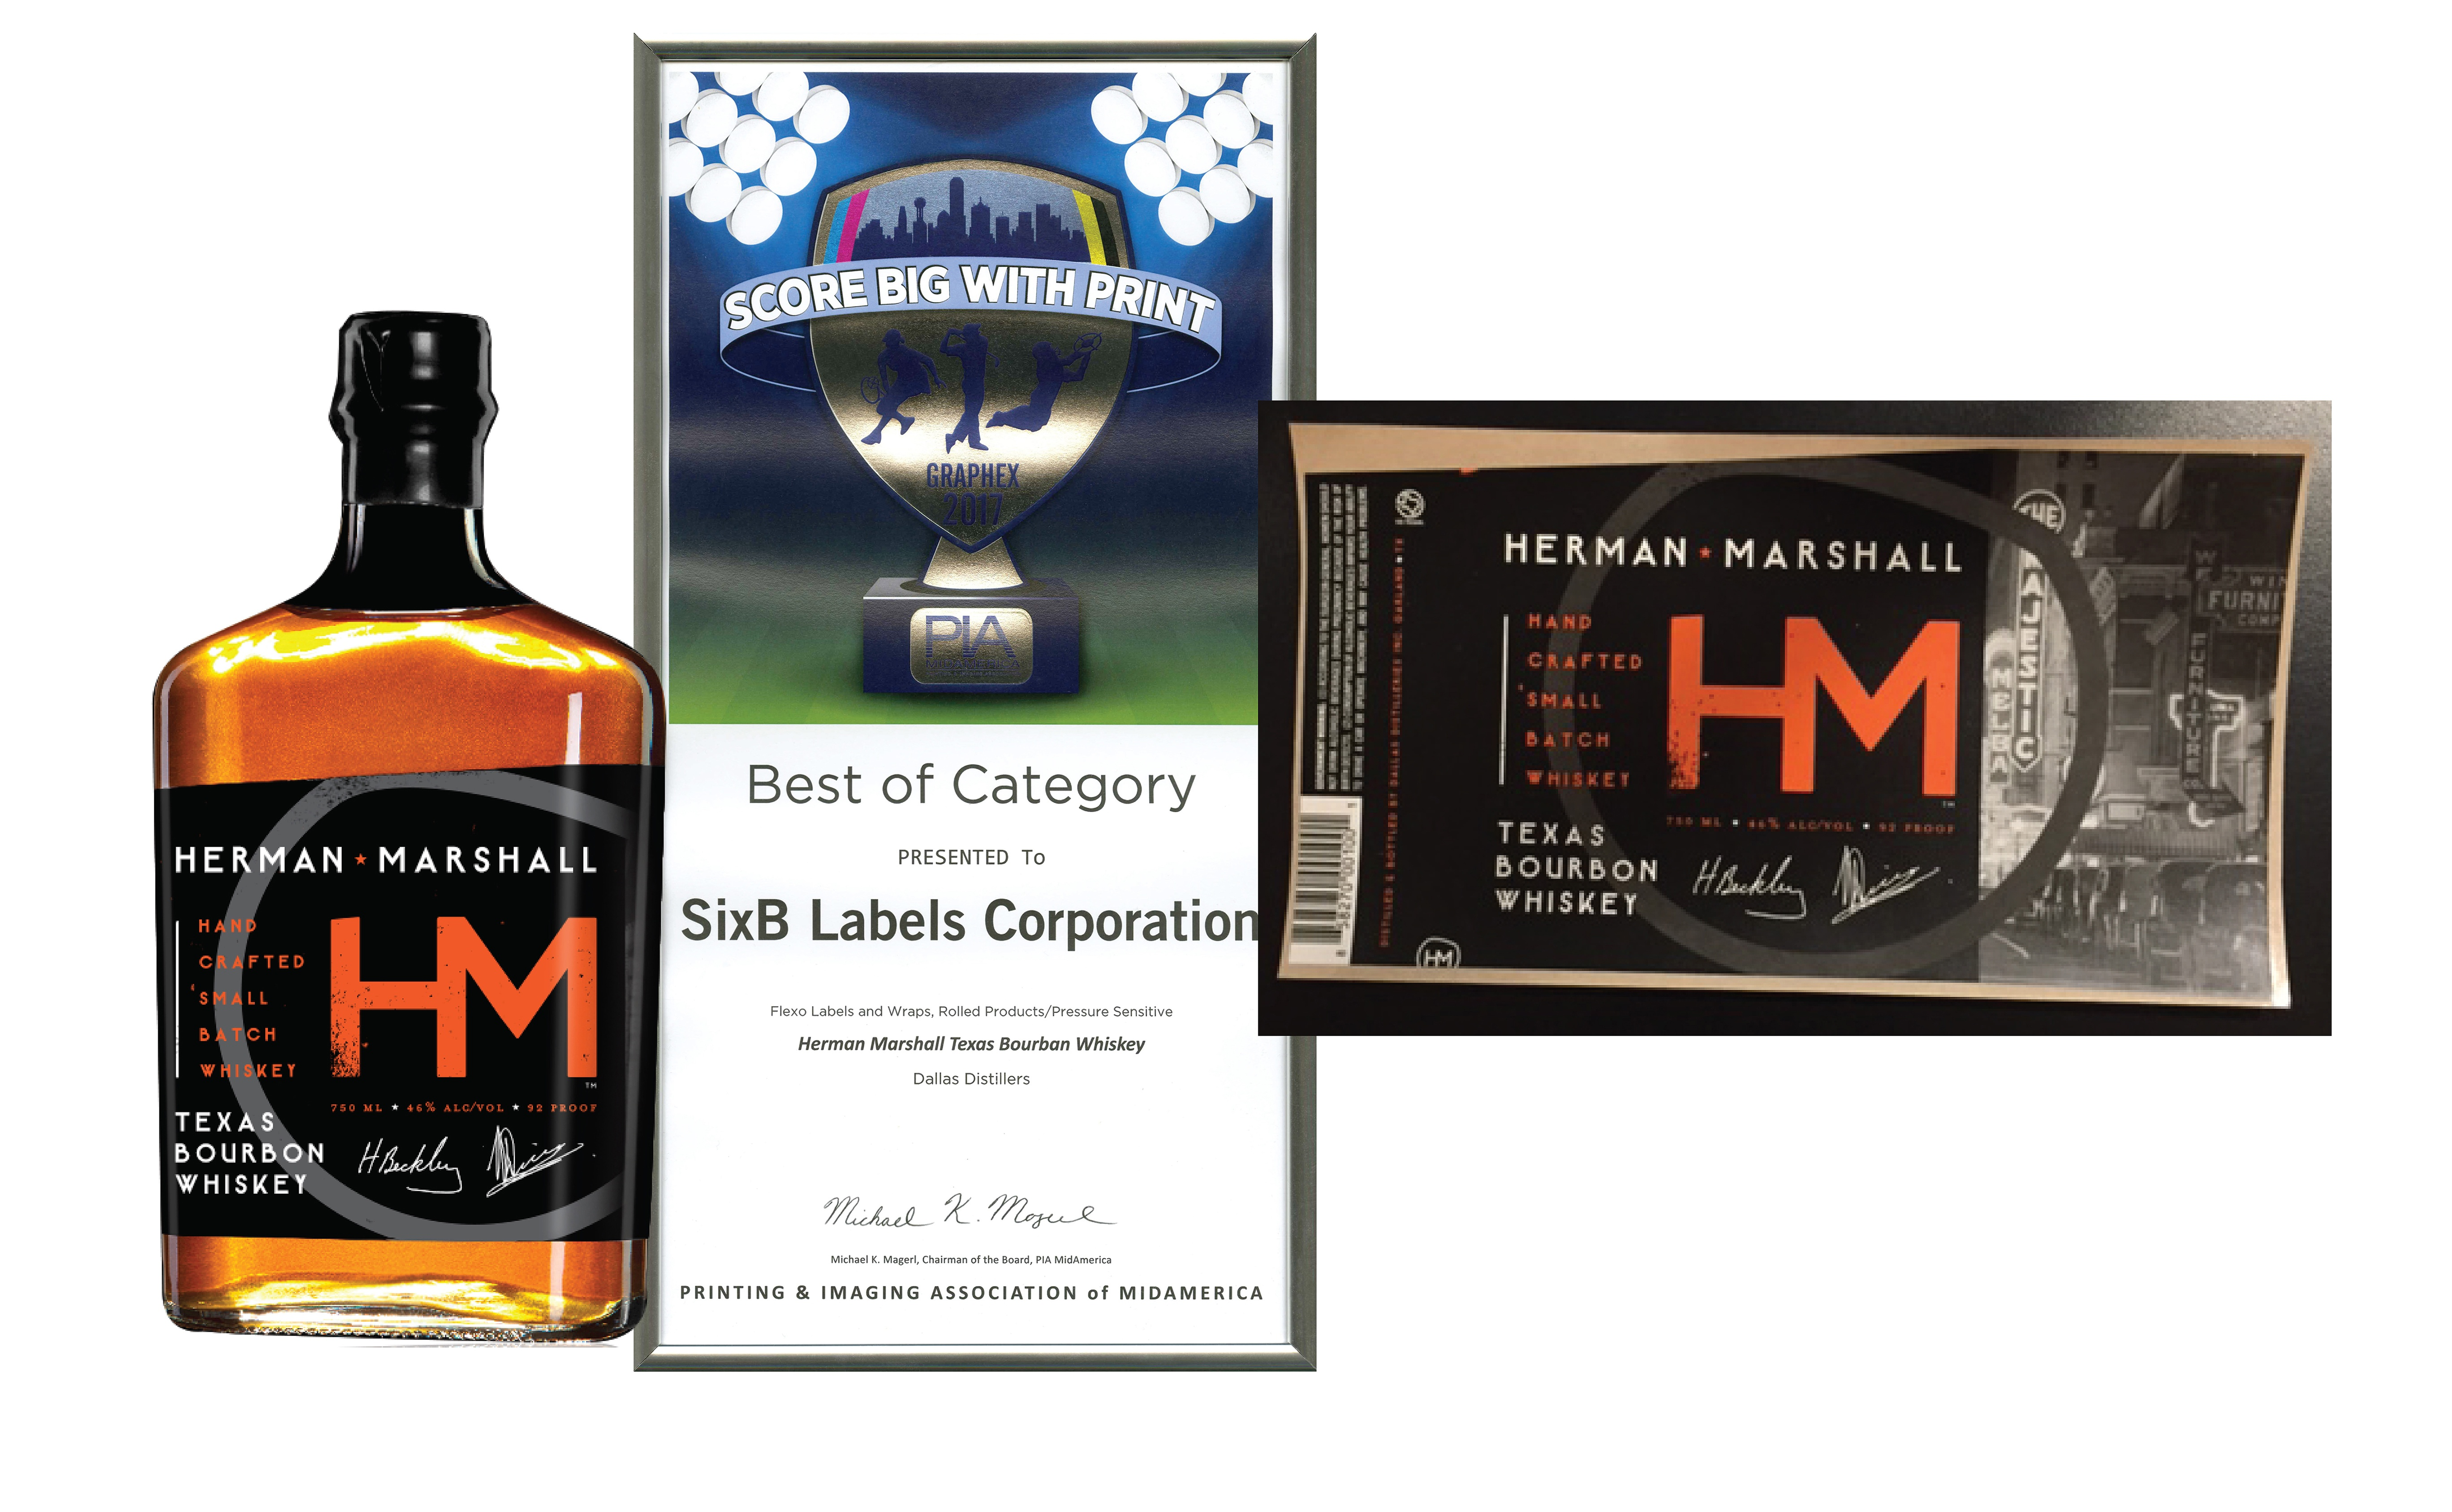 SixB-Labels-PIA-best-of-category-digital-printing-tags-labels-award